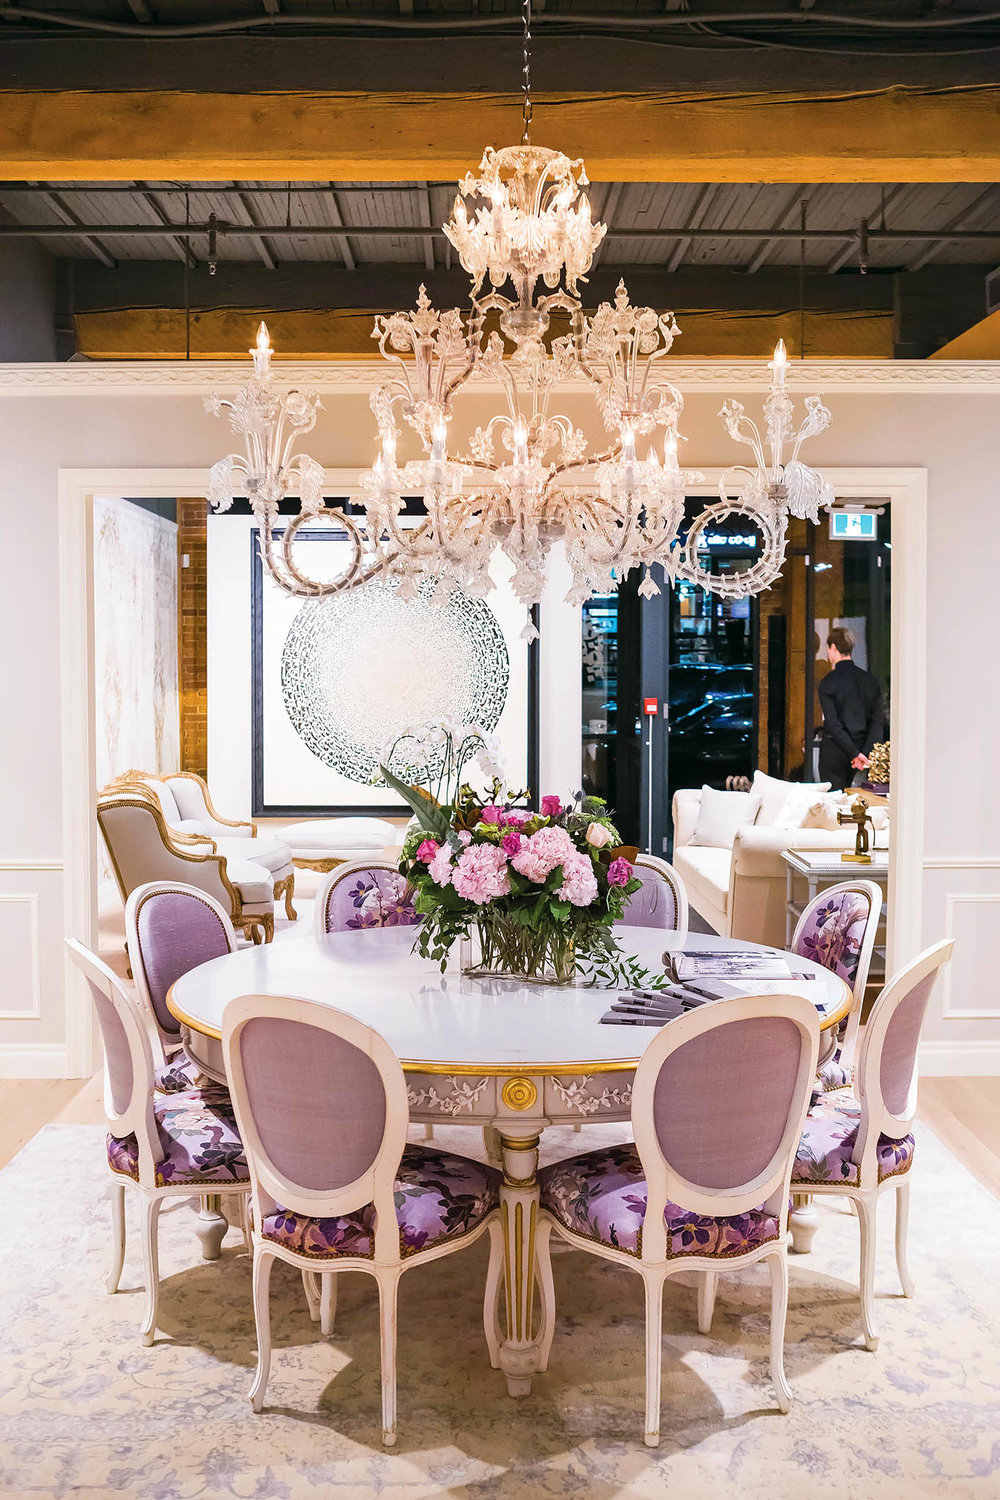 The Napoleon III dining table with fleurette decoration and Regency medallion chairs inside the Vancouver showroom. Photos by Kim Bellavance